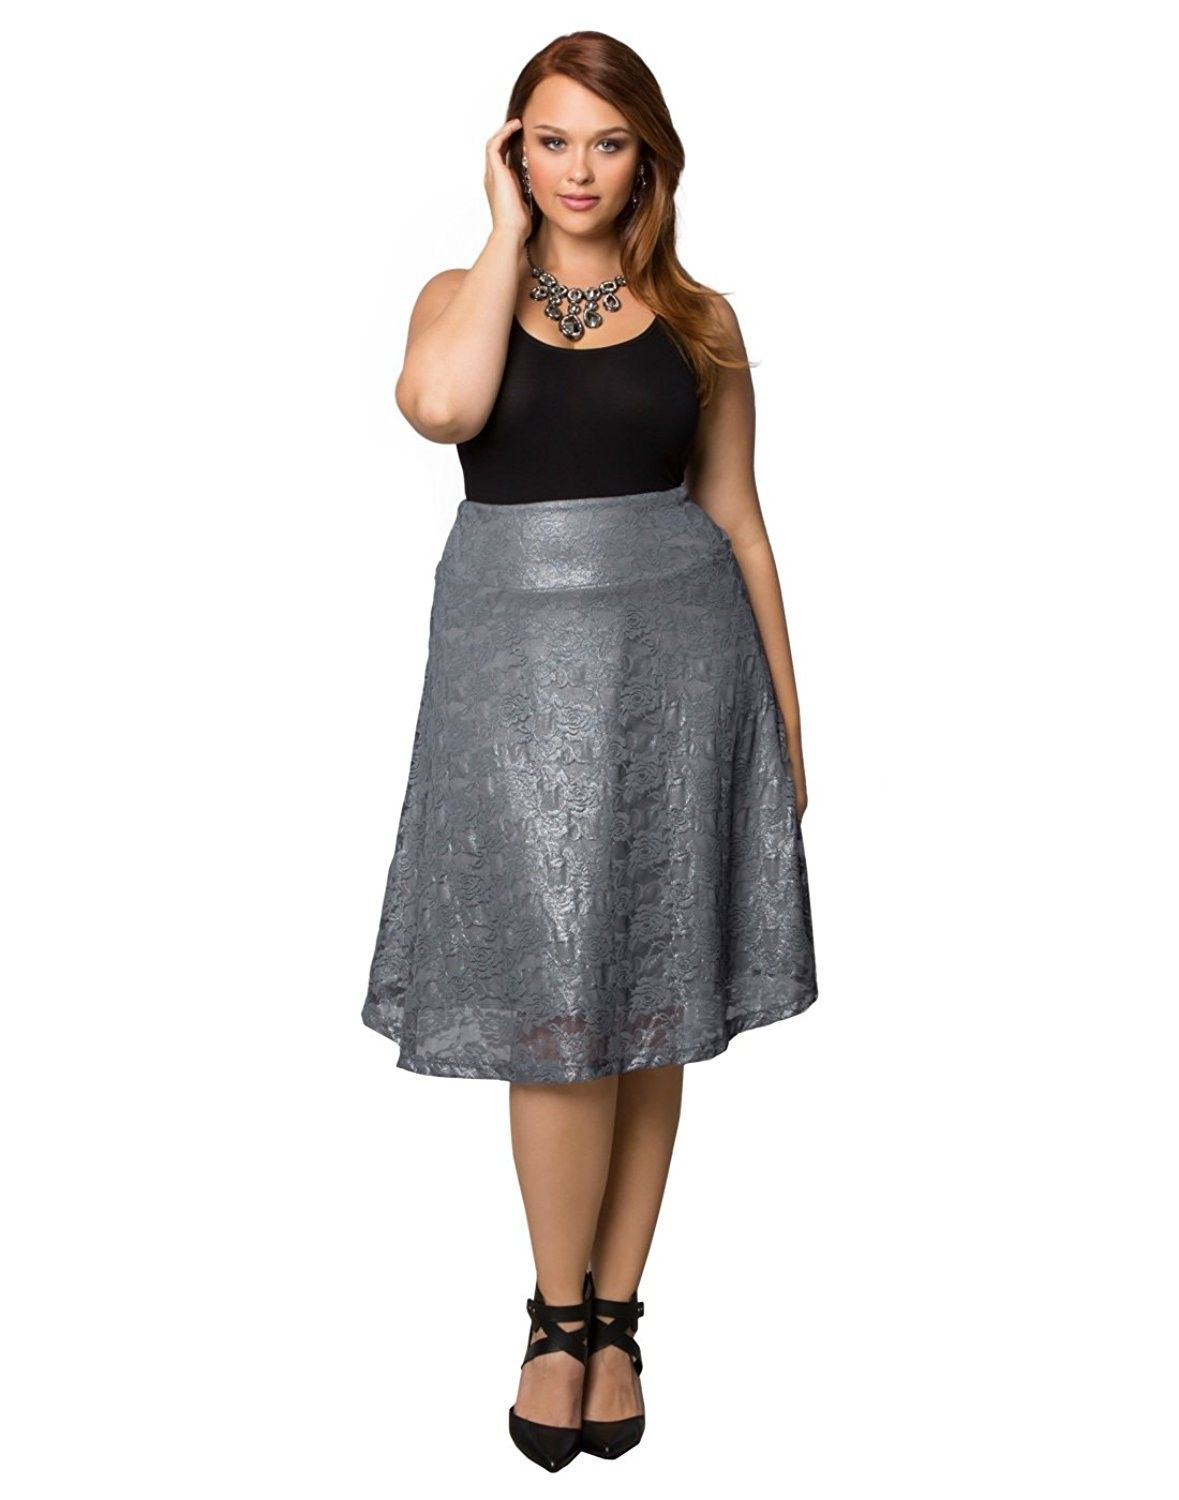 5857be2acb Kiyonna Women's Plus Size Limited Edition Shimmer Circle Skirt ...